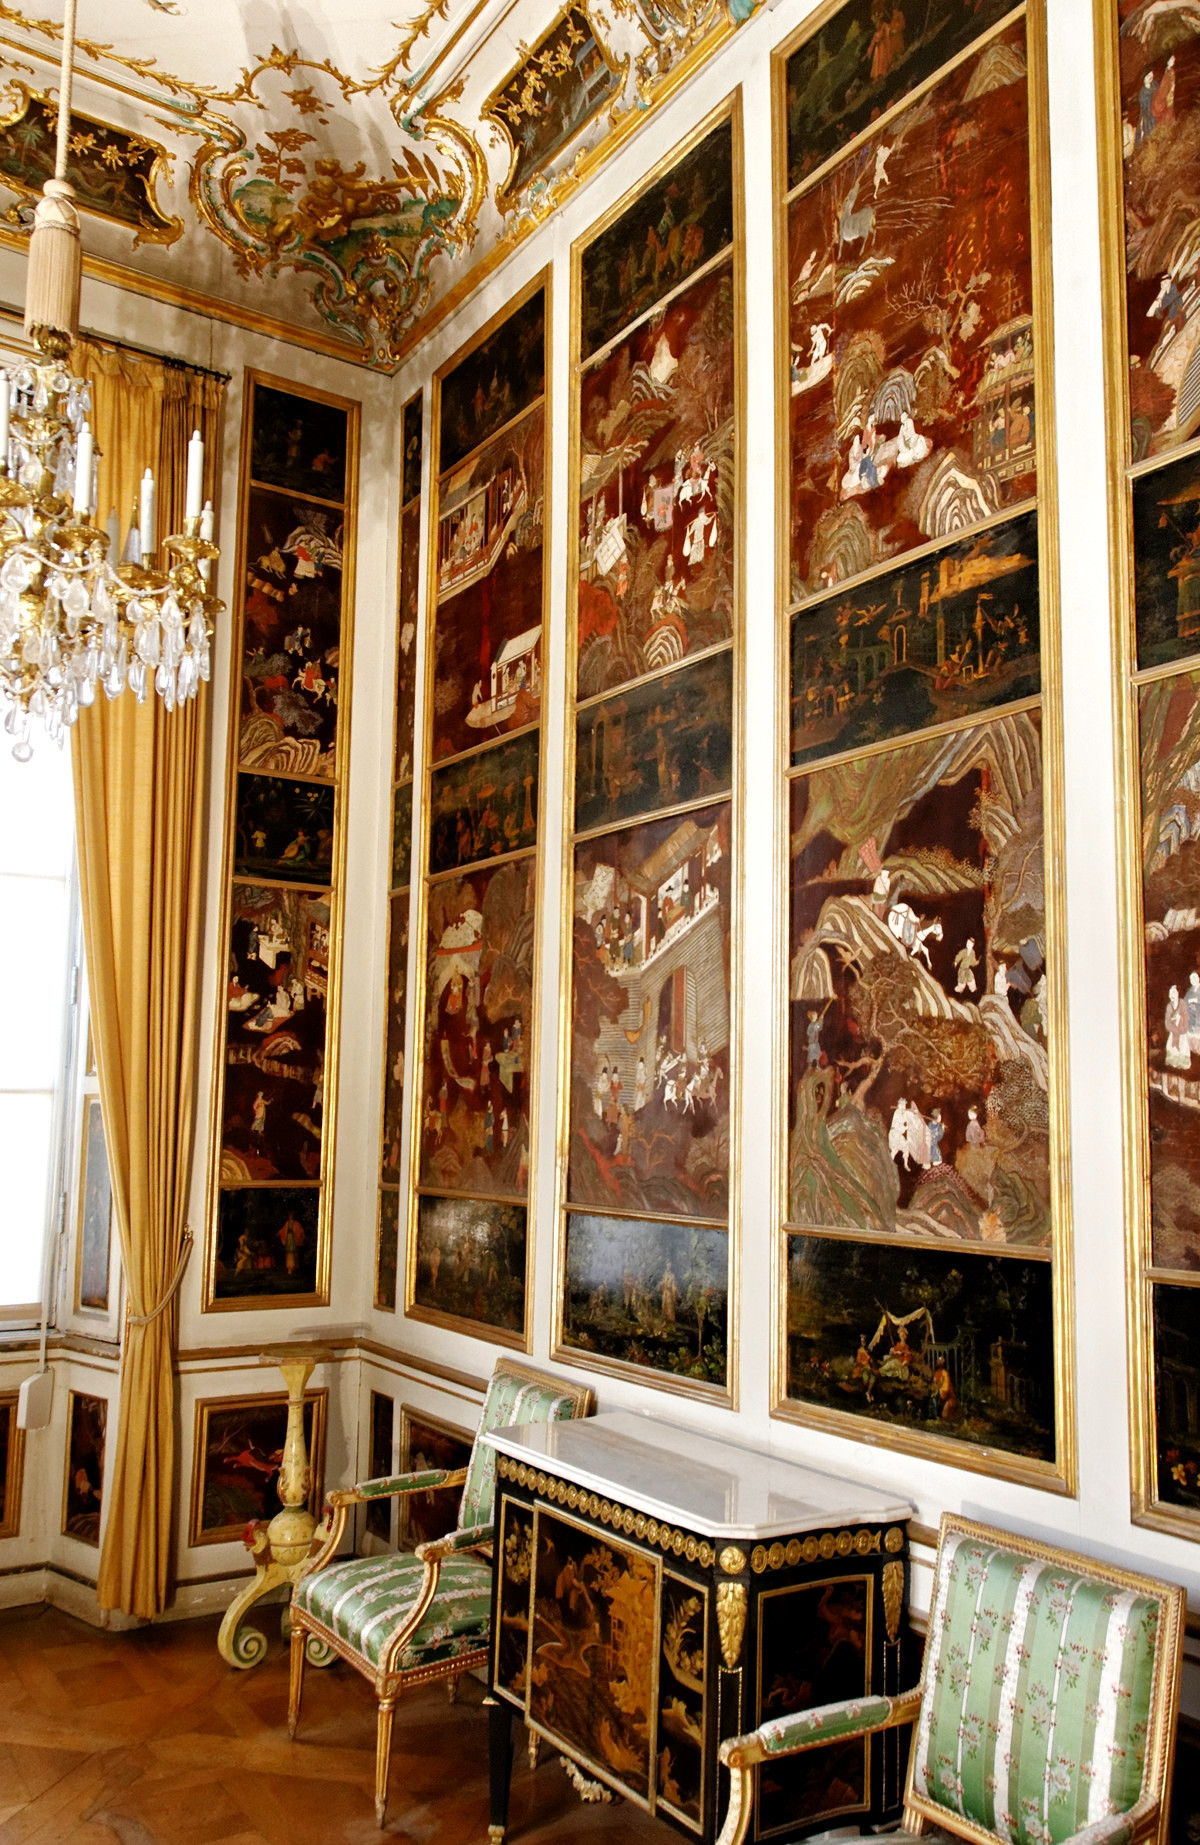 The Cabinet of chinoiserie. Nymphenburg Palace, Munich, Germany. Credit Yelkrokoyade